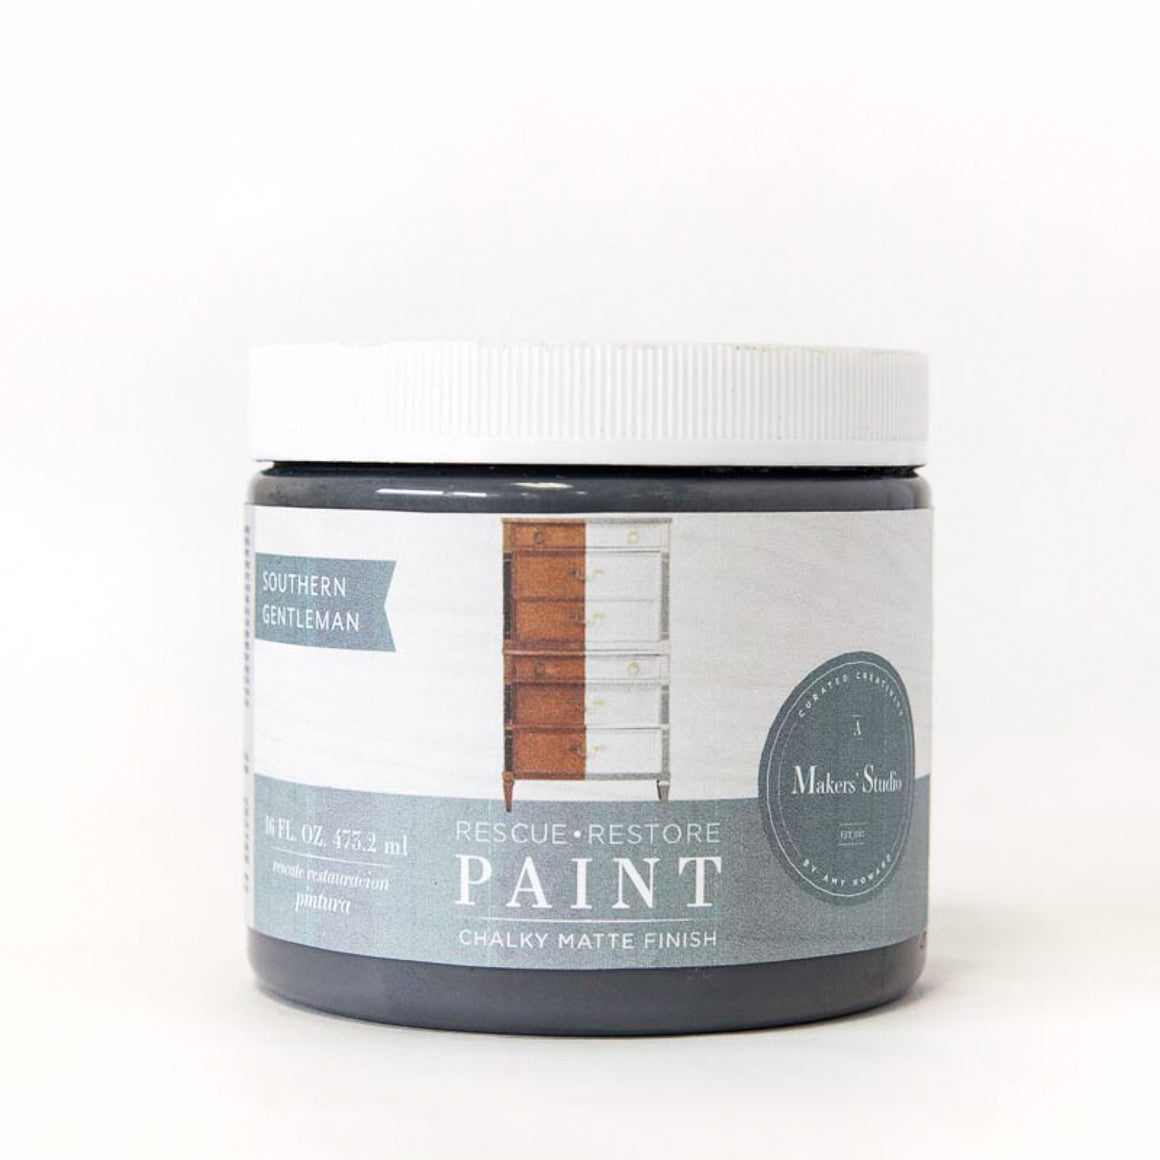 Southern Gentleman - Rescue Restore Paint